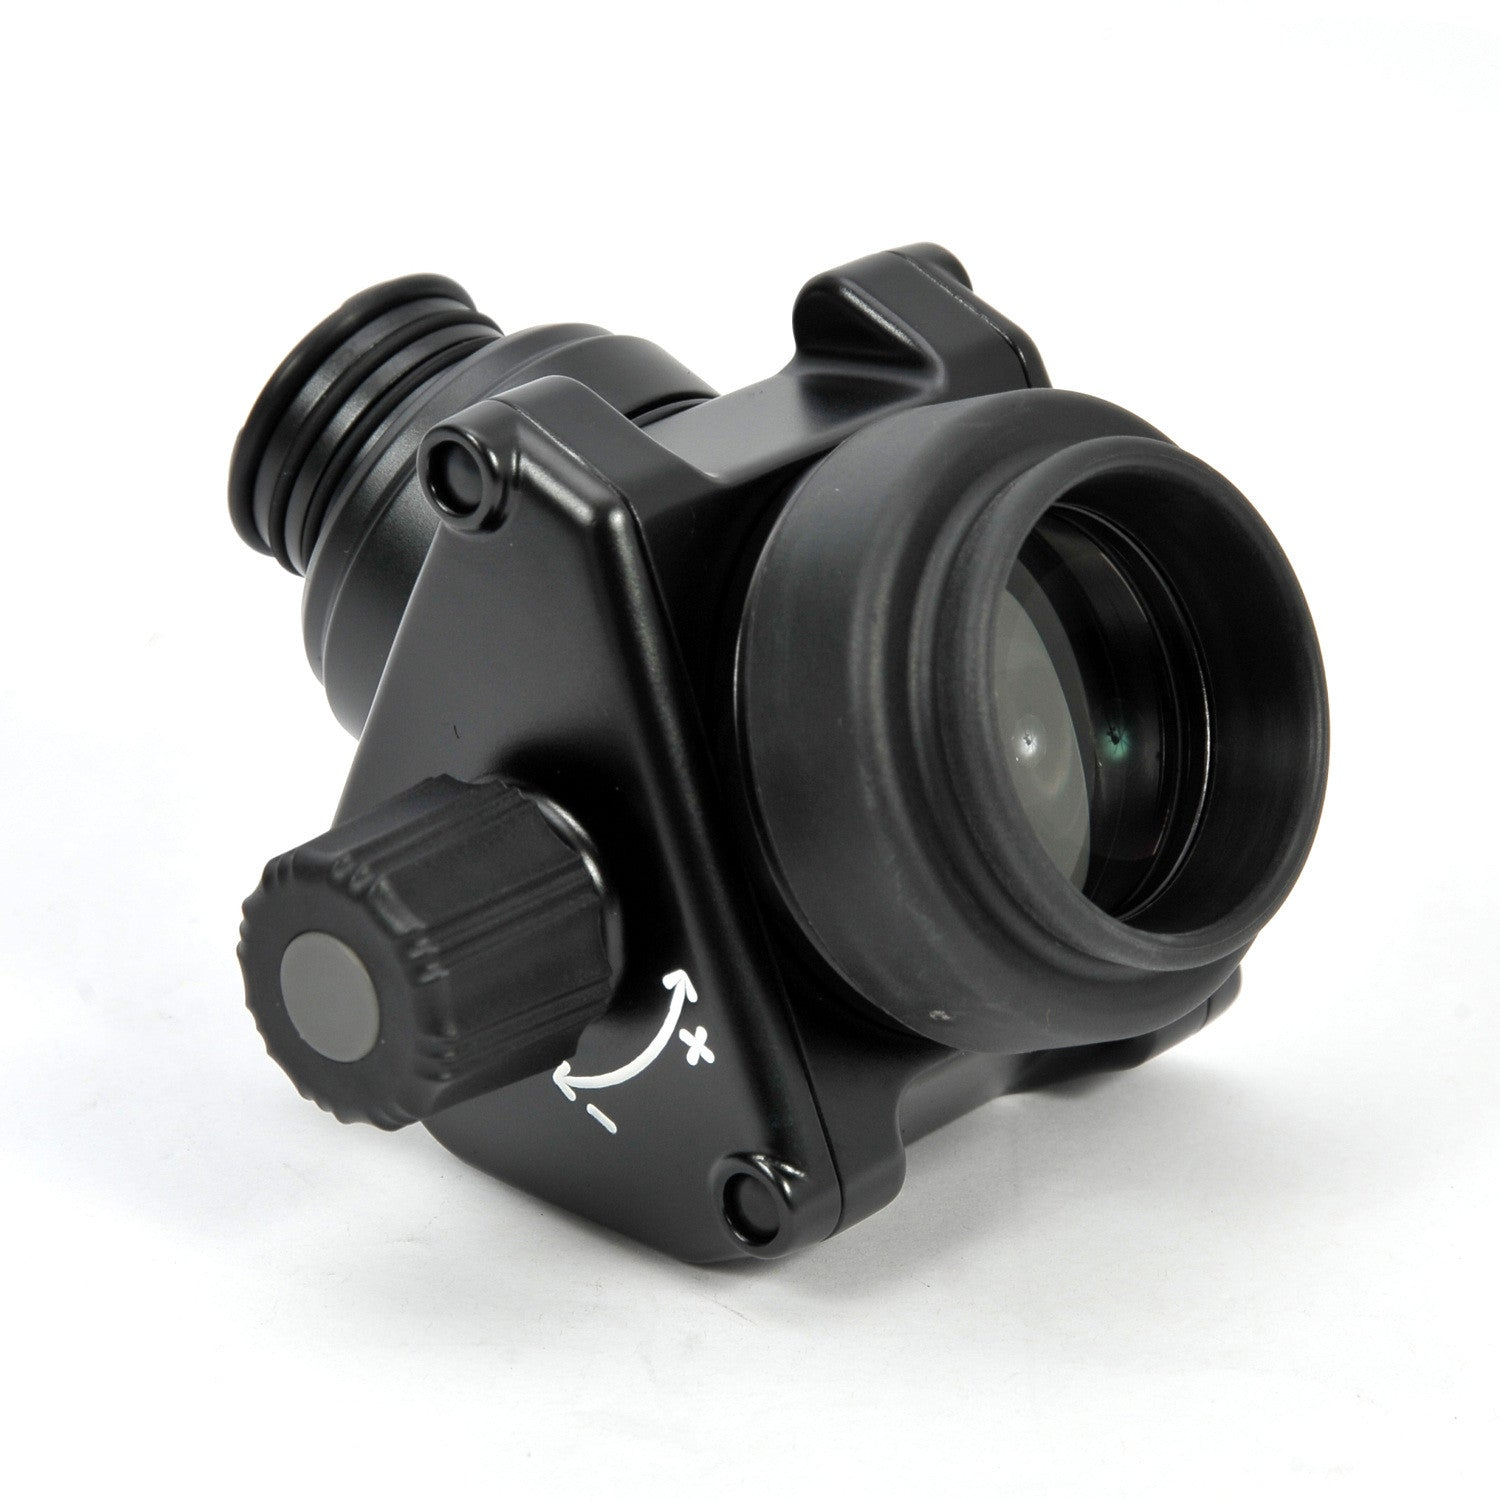 Nauticam 45 degree Viewfinder for MIL Housings - 32205